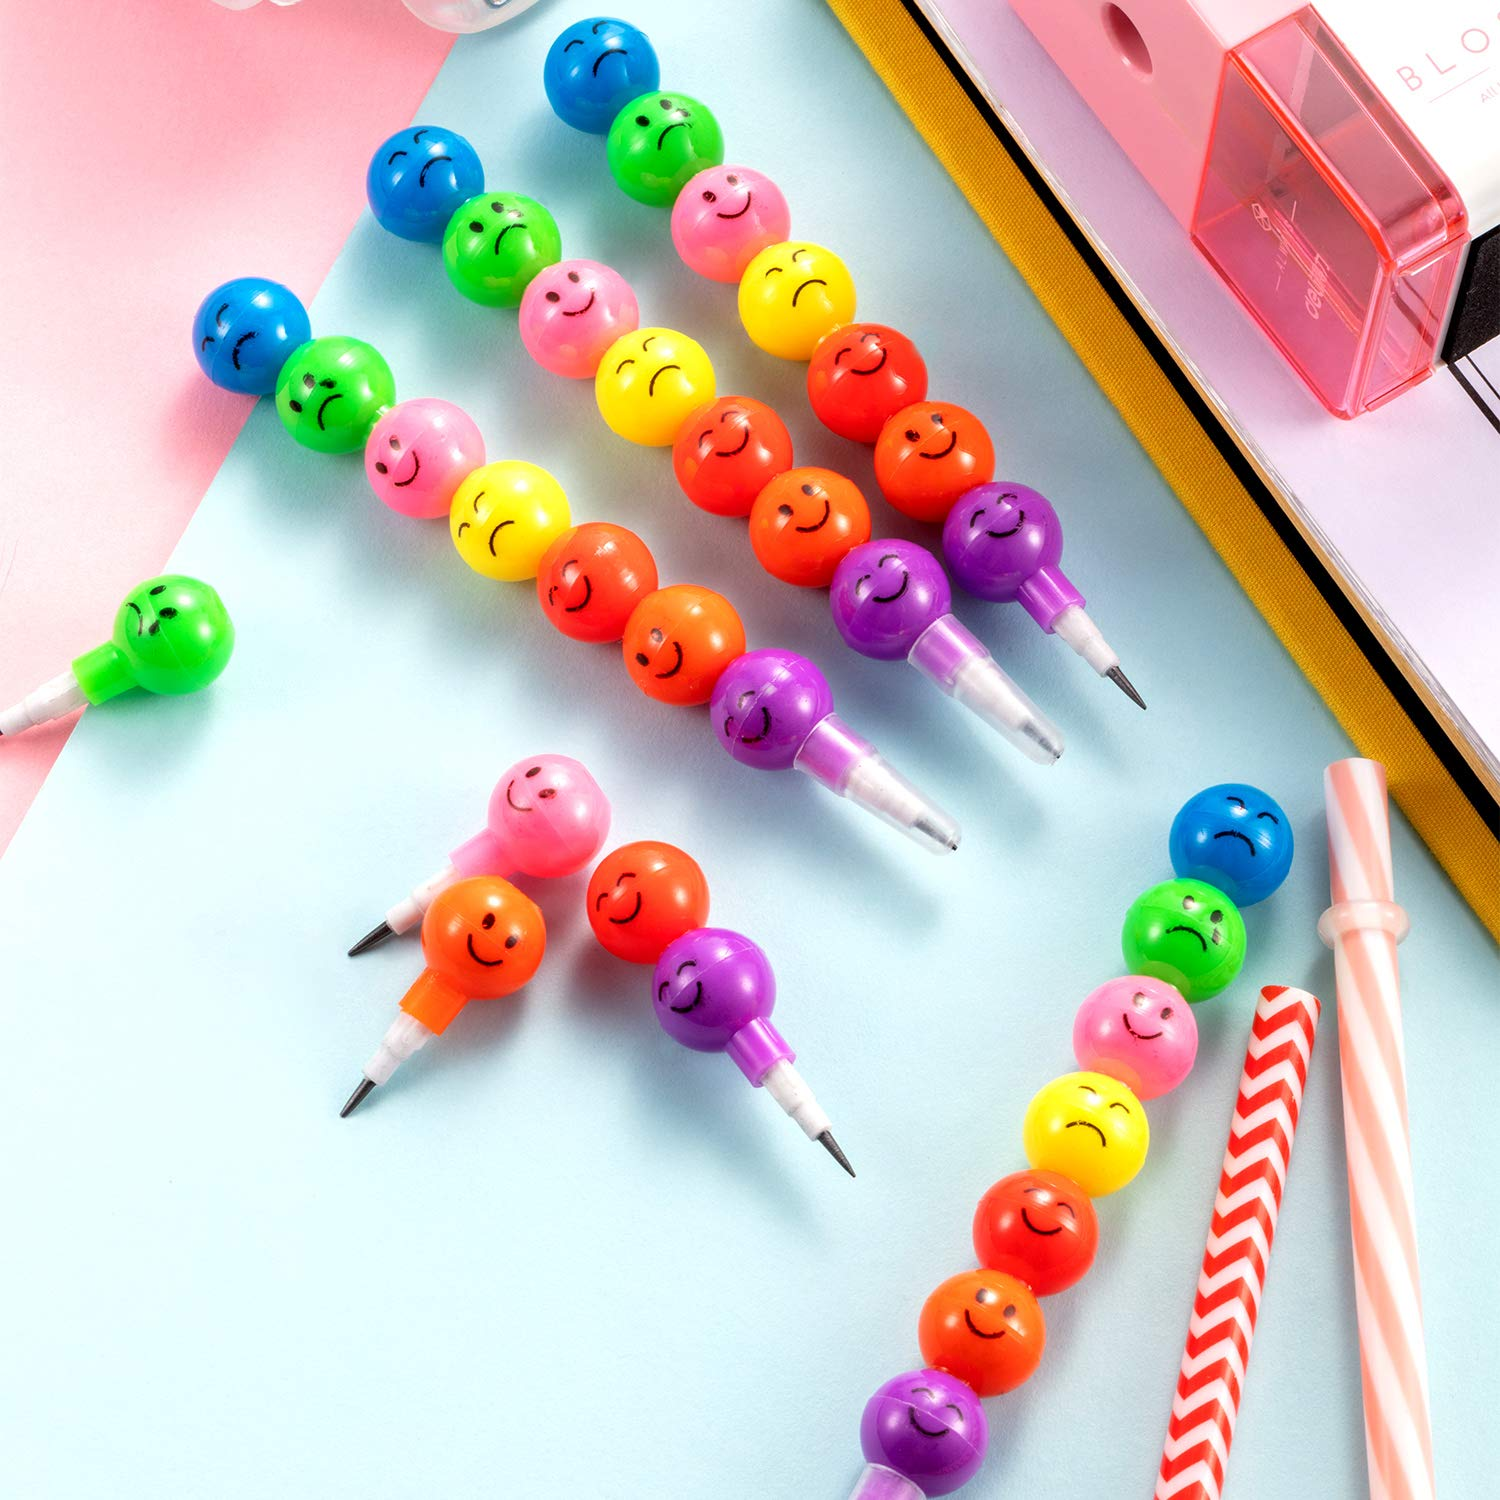 30 Pieces Cute Facial Expression Pencil Colorful Stackable Pencils with Pencil Lead Set for School Office Supplies Children